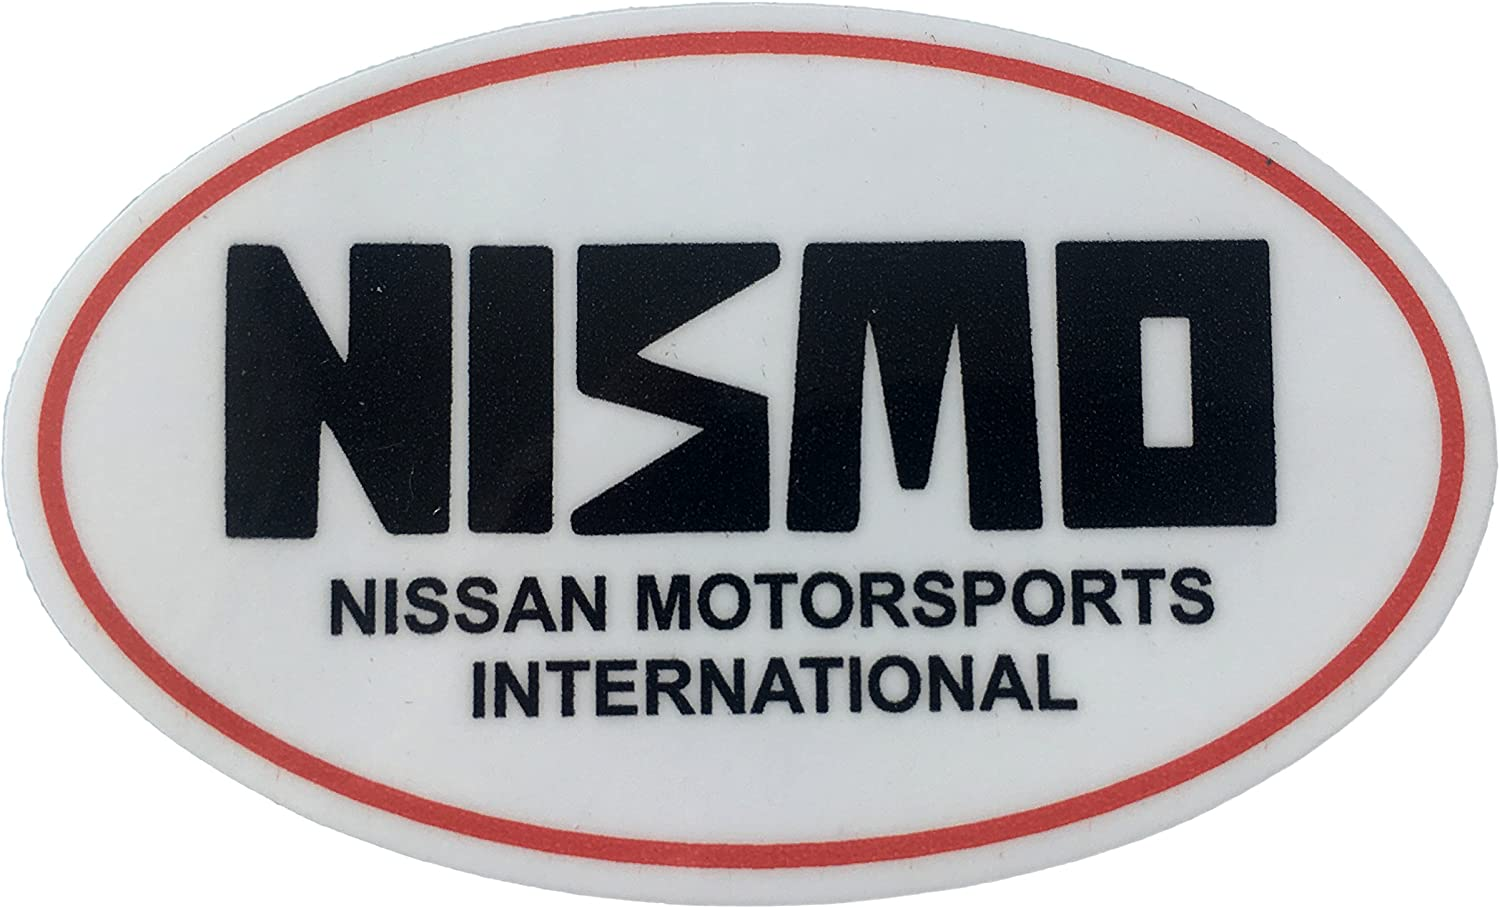 Printed on Orafol Long Lasting Waterproof Vinyl Sticker Nismo Nissan Motorsports International Racing Automotive car Deal Remove Without Residue. Perfect for Nissan /& Japanese Domestic Market JDM